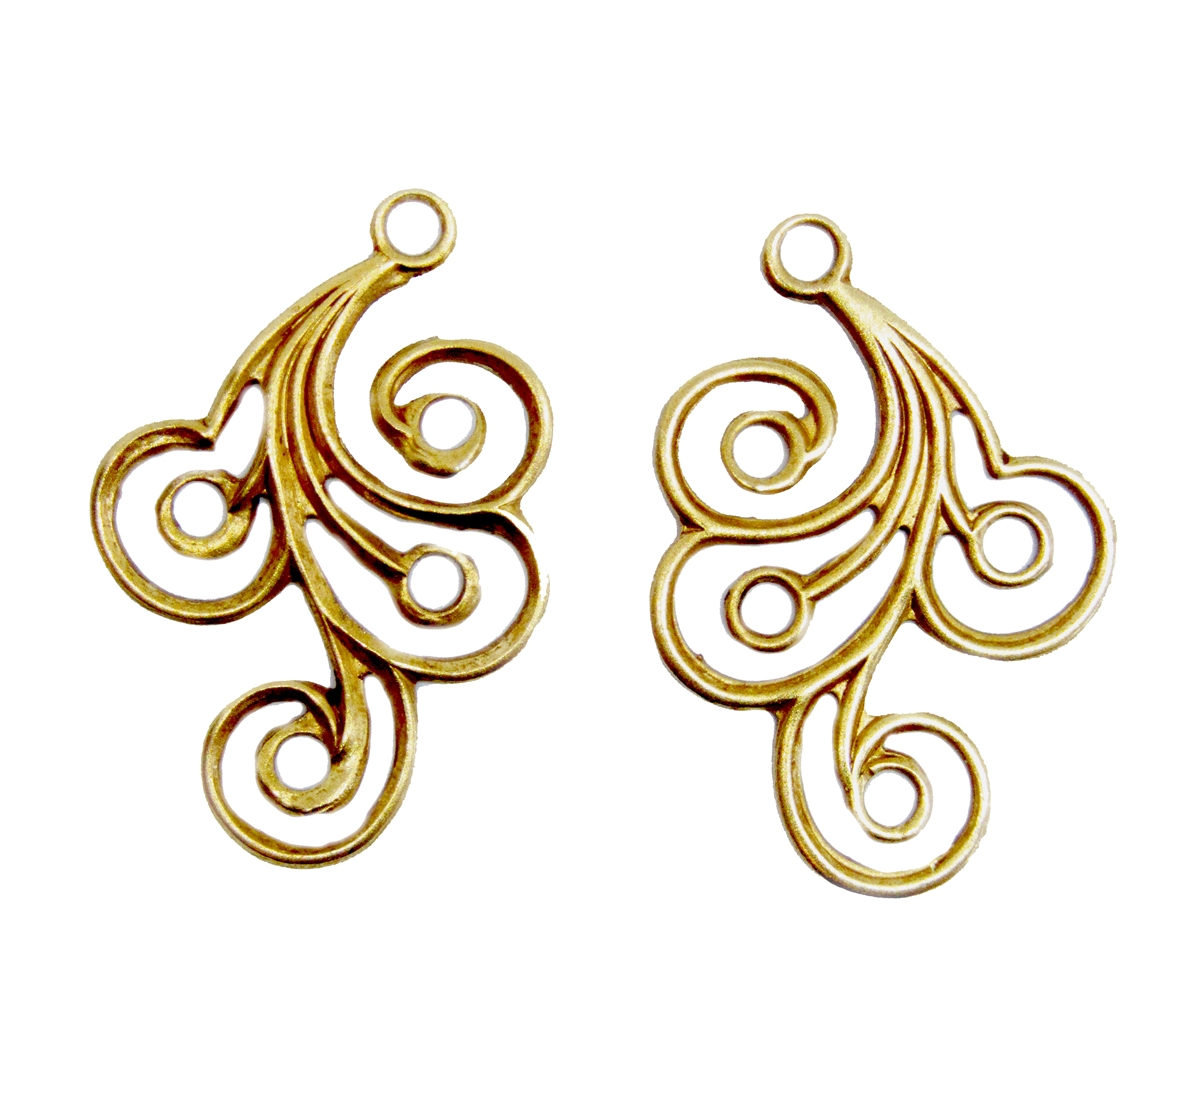 spiral design dropsclassic gold plated gold plated filigree